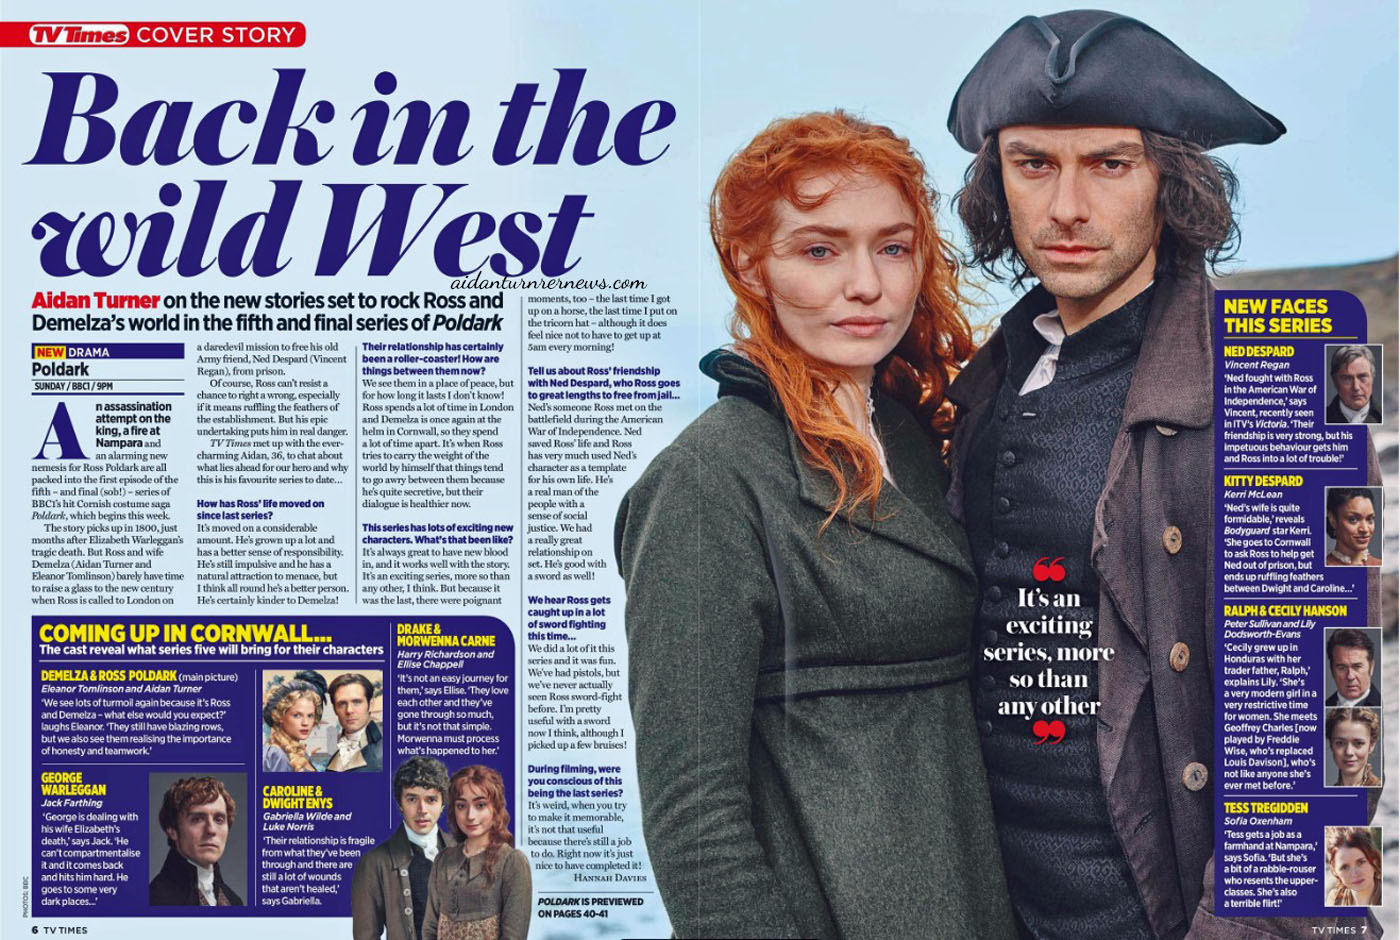 TV Times feature